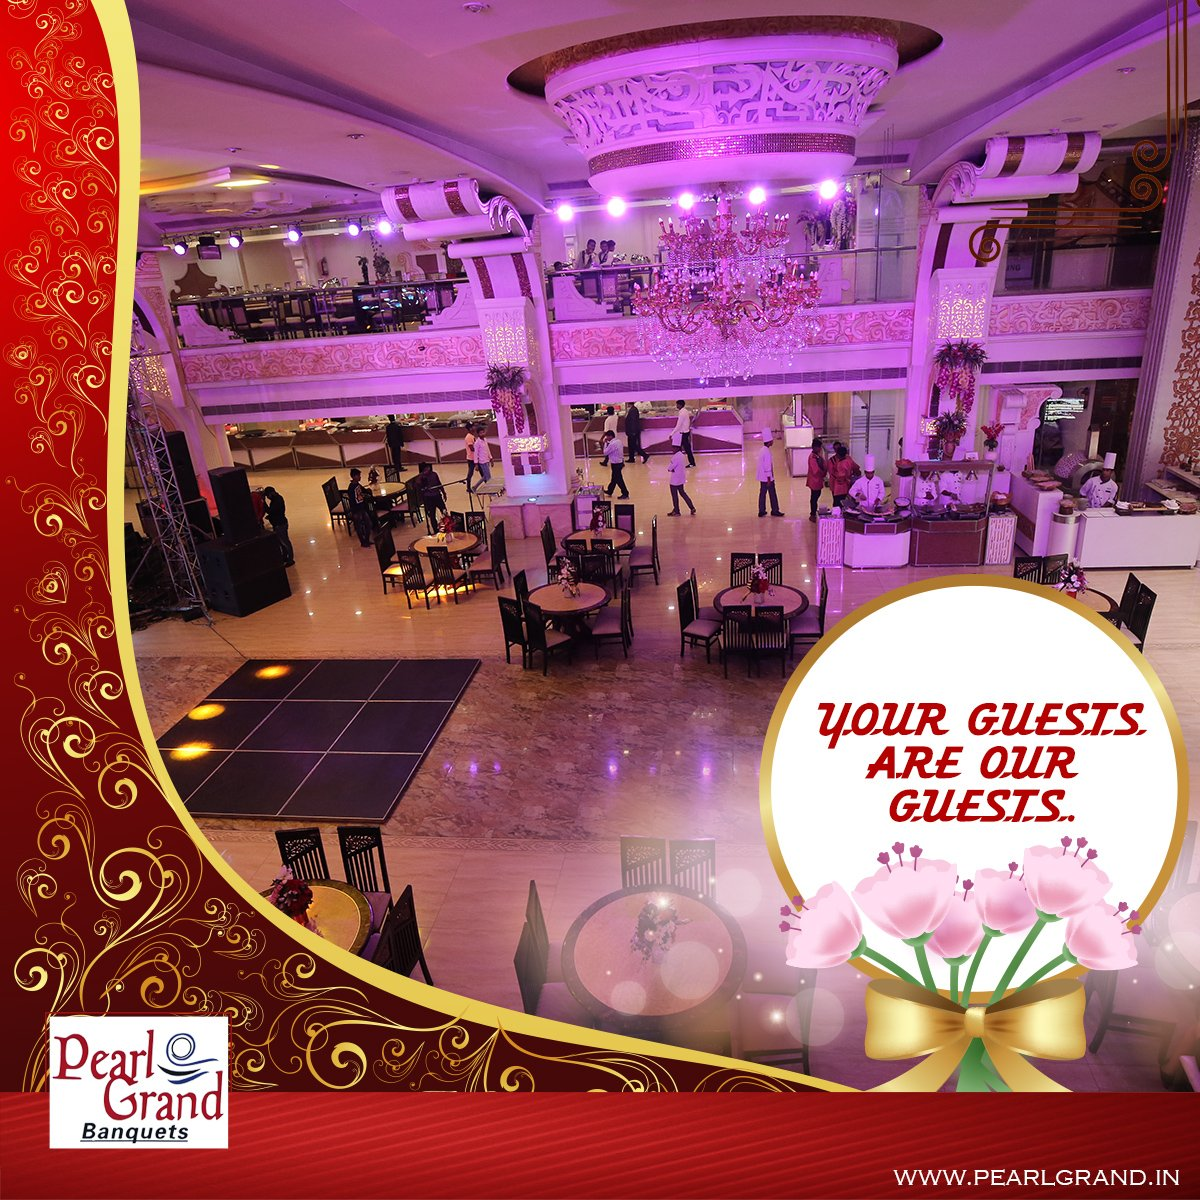 Your guests are our guests. #Weddings #Marriages #Parties #PearlGrandBanquets #PearlGrand https://t.co/fOyNtYObYL